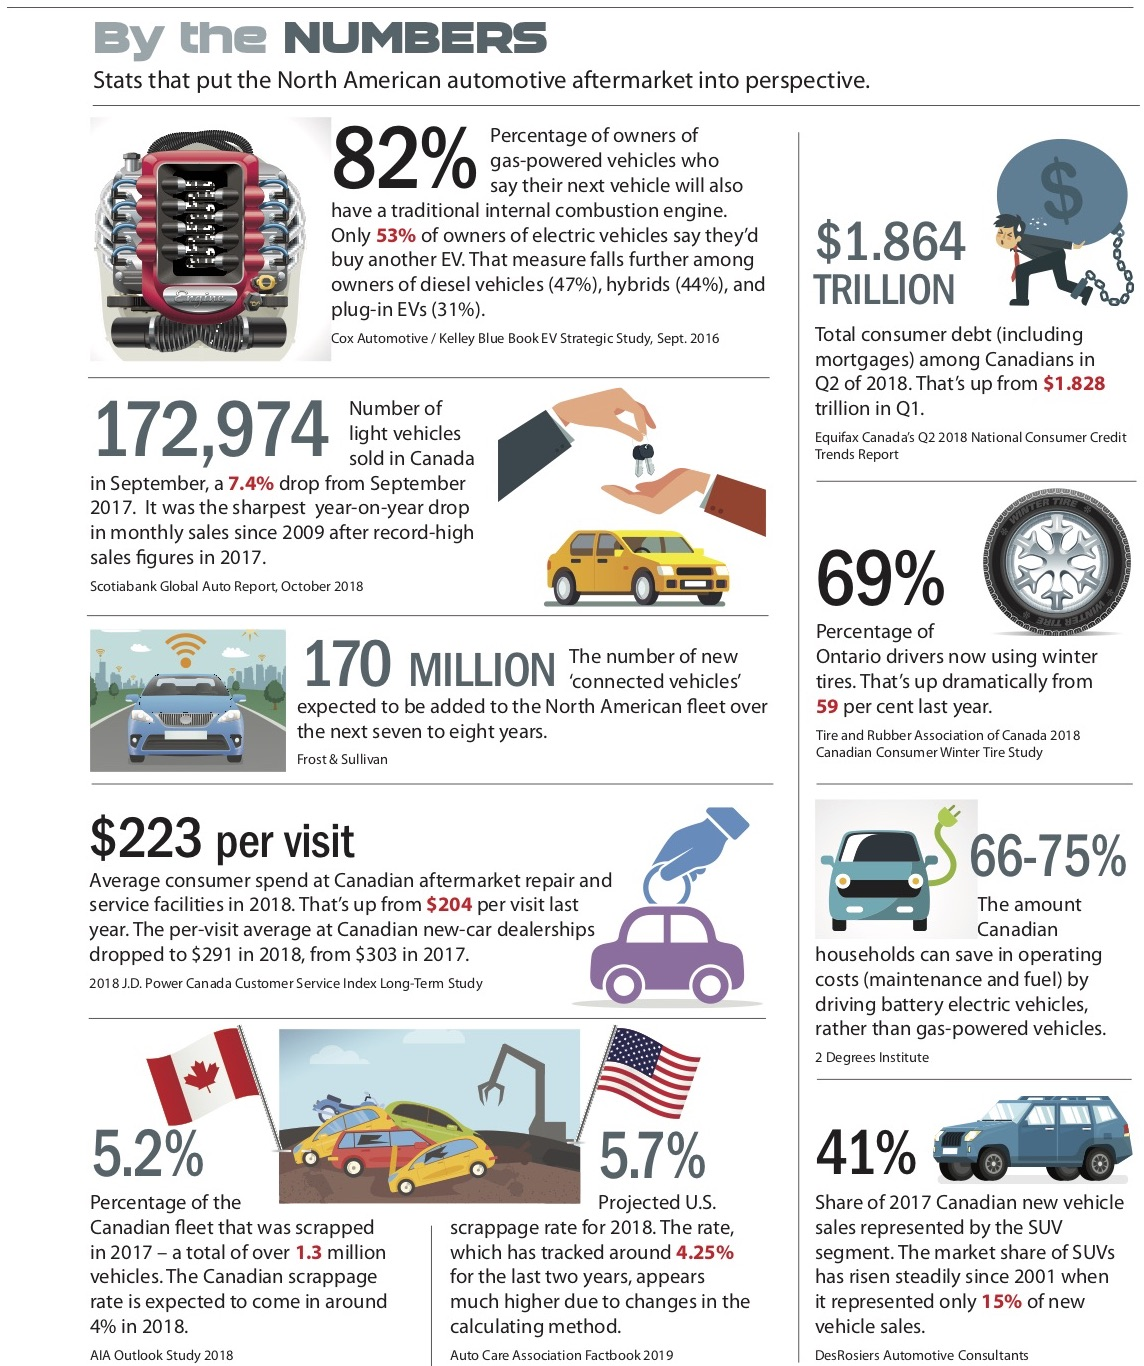 BY THE NUMBERS: Stats the tell a story - Auto Service World